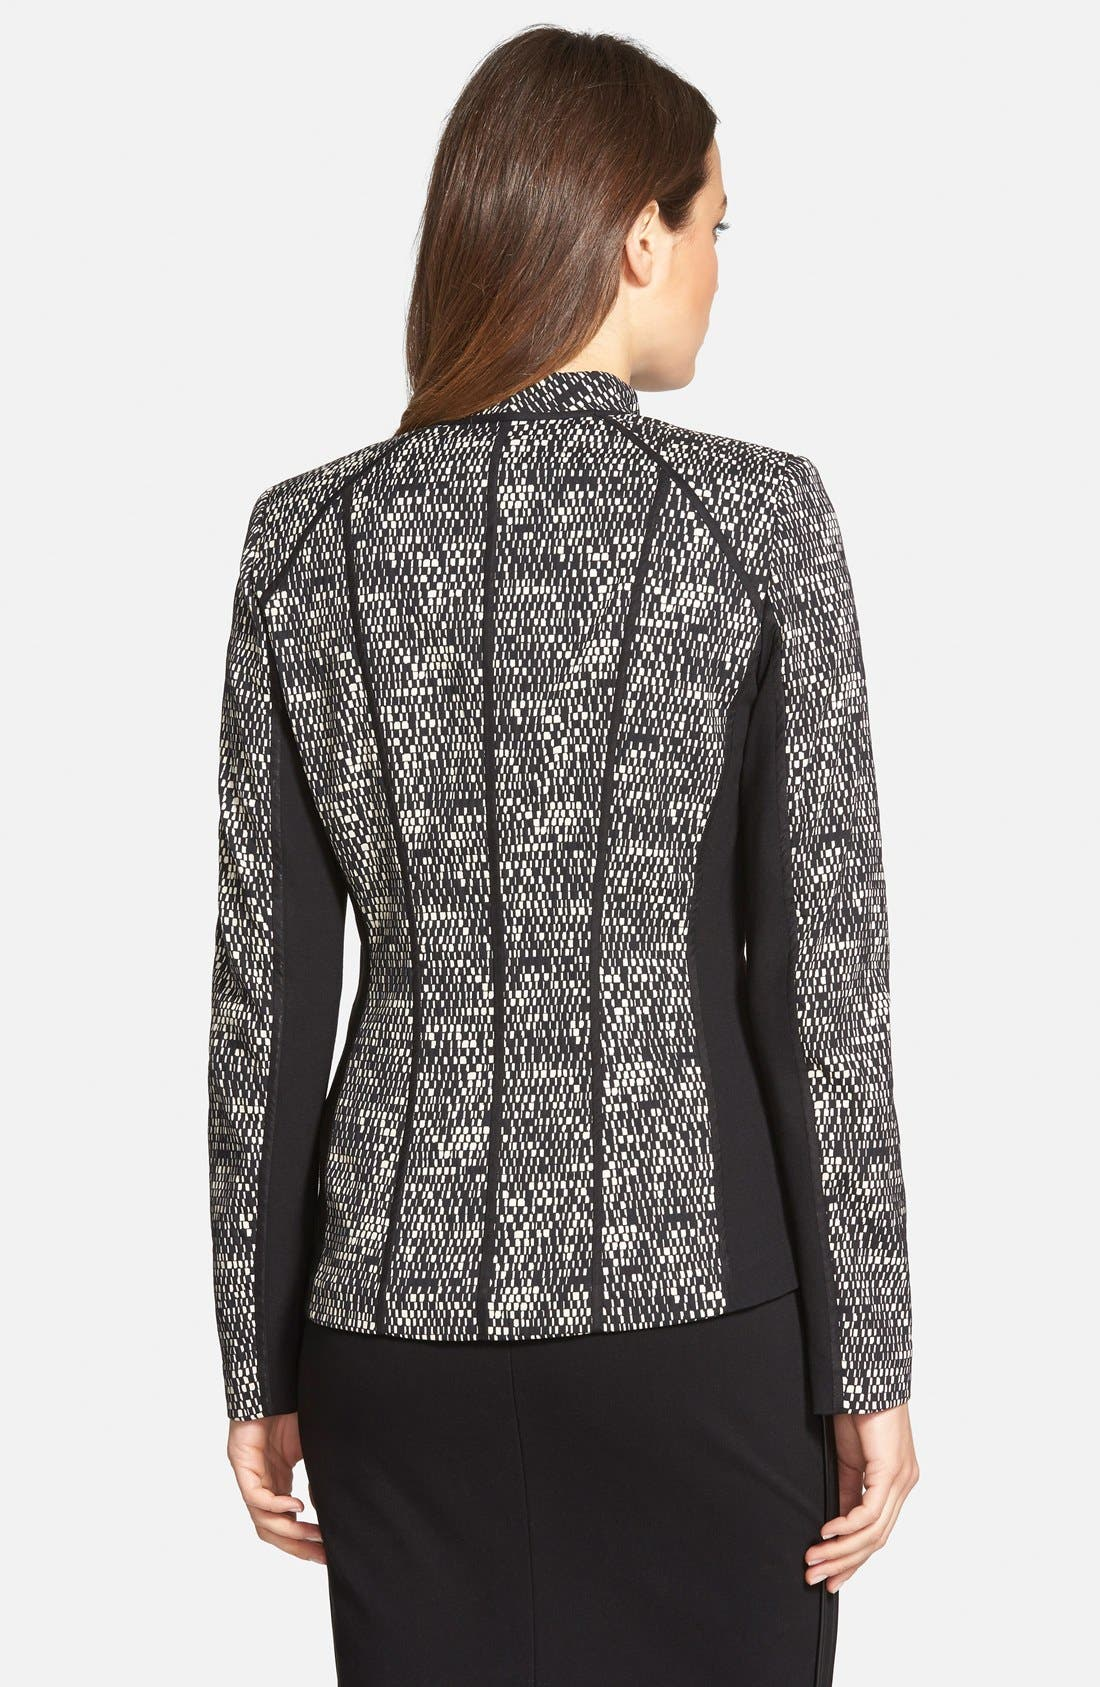 Alternate Image 2  - Lafayette 148 New York 'Amia' Jacket (Regular & Petite)